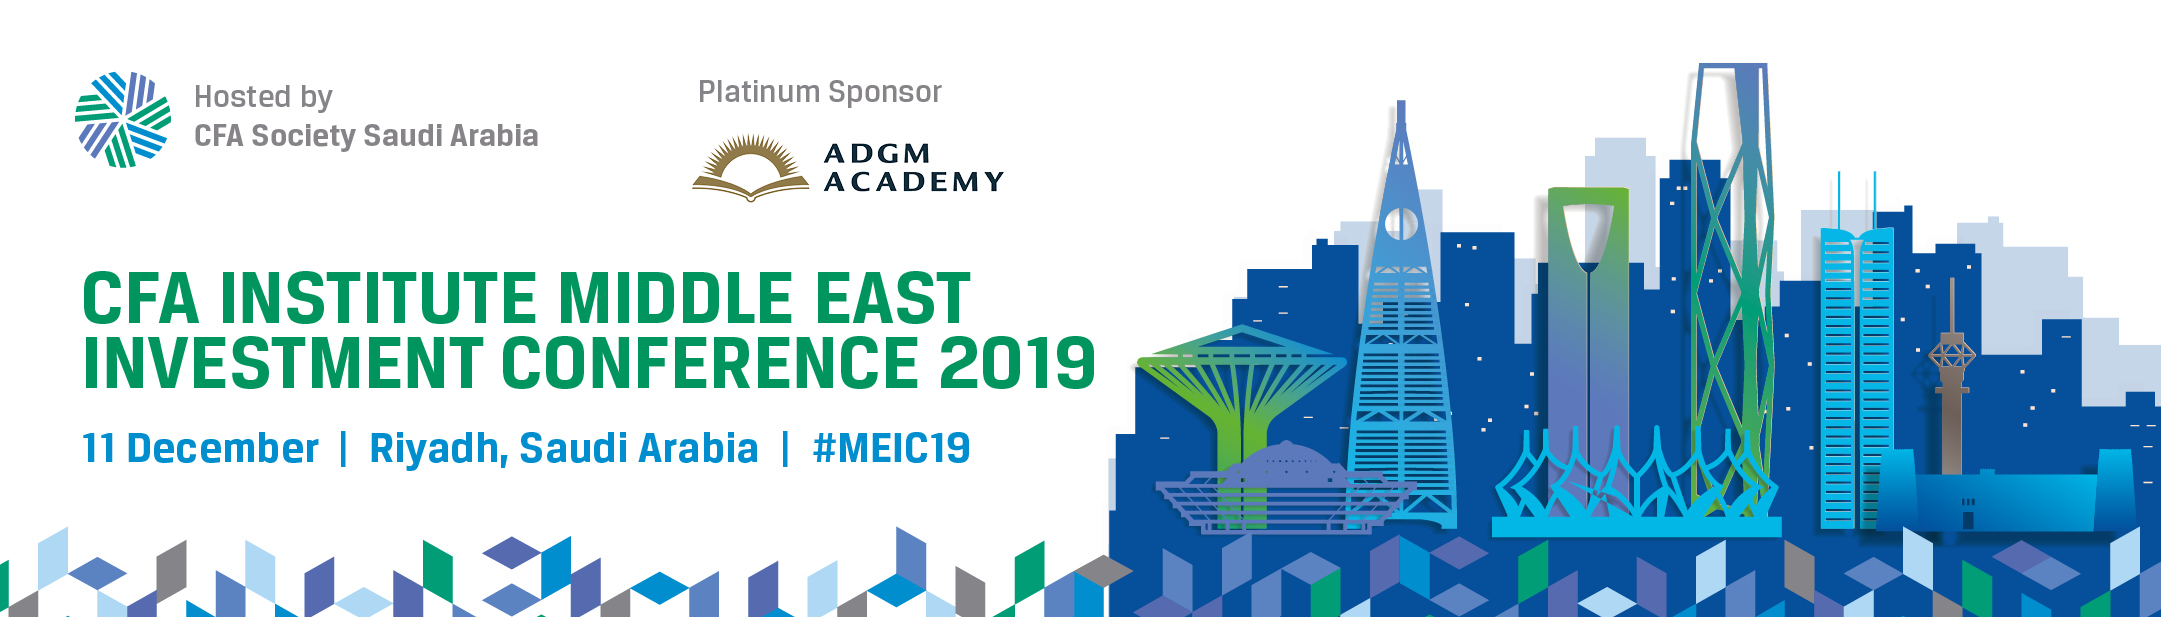 Middle East Investment Conference 2019. 11 December 2019, Riyadh, Saudi Arabia. #MEIC19